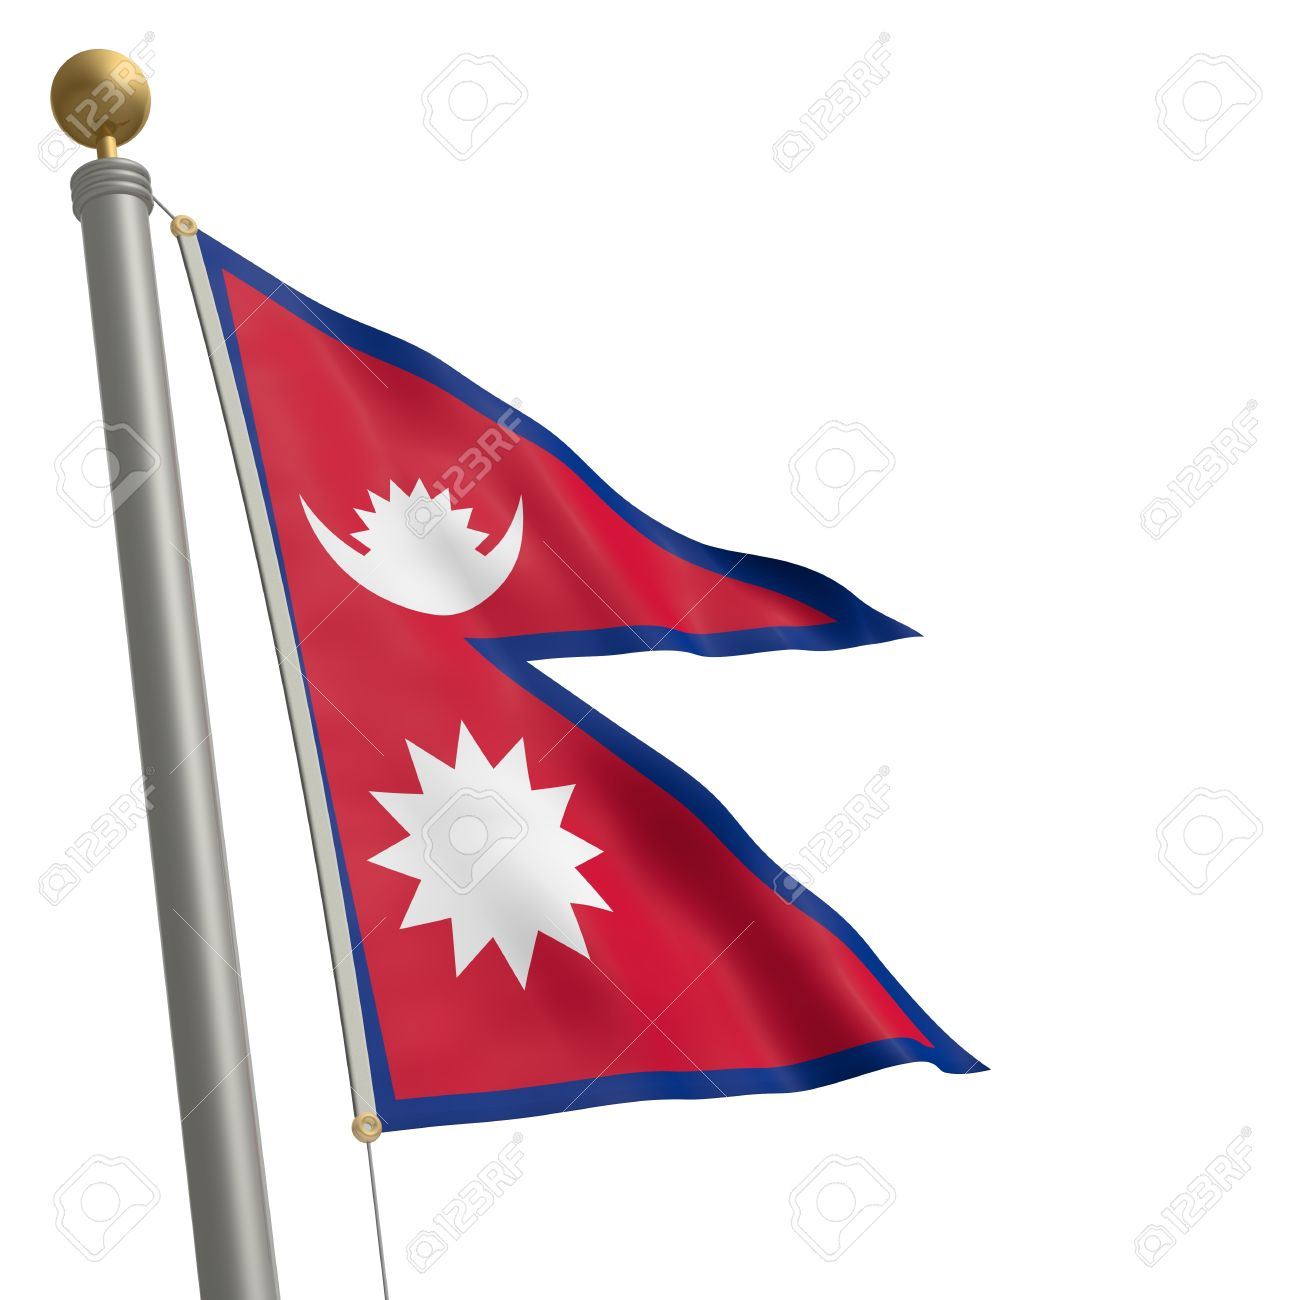 Nepal: Stalled Justice